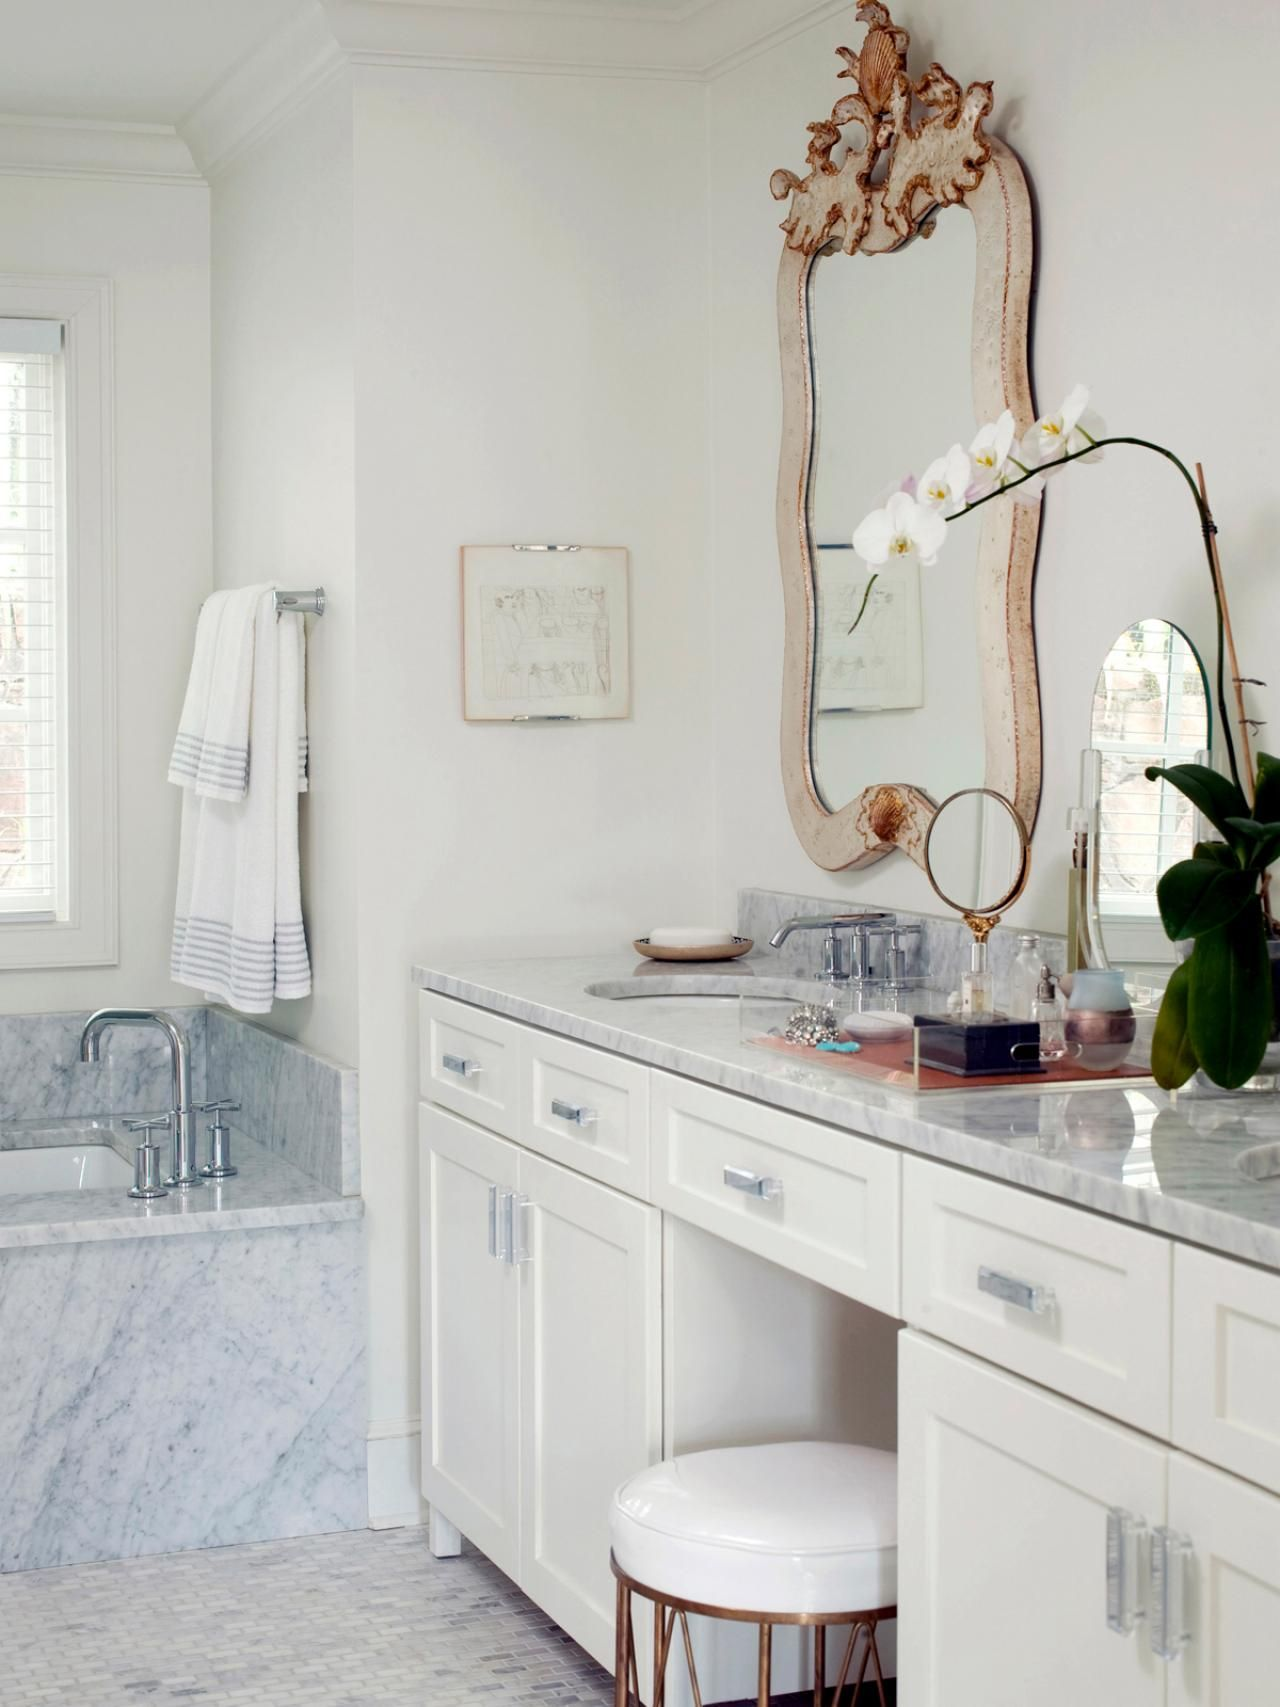 Makeup vanity dressing table bathroom ideas design with vanities tile cabinets sinks hgtv